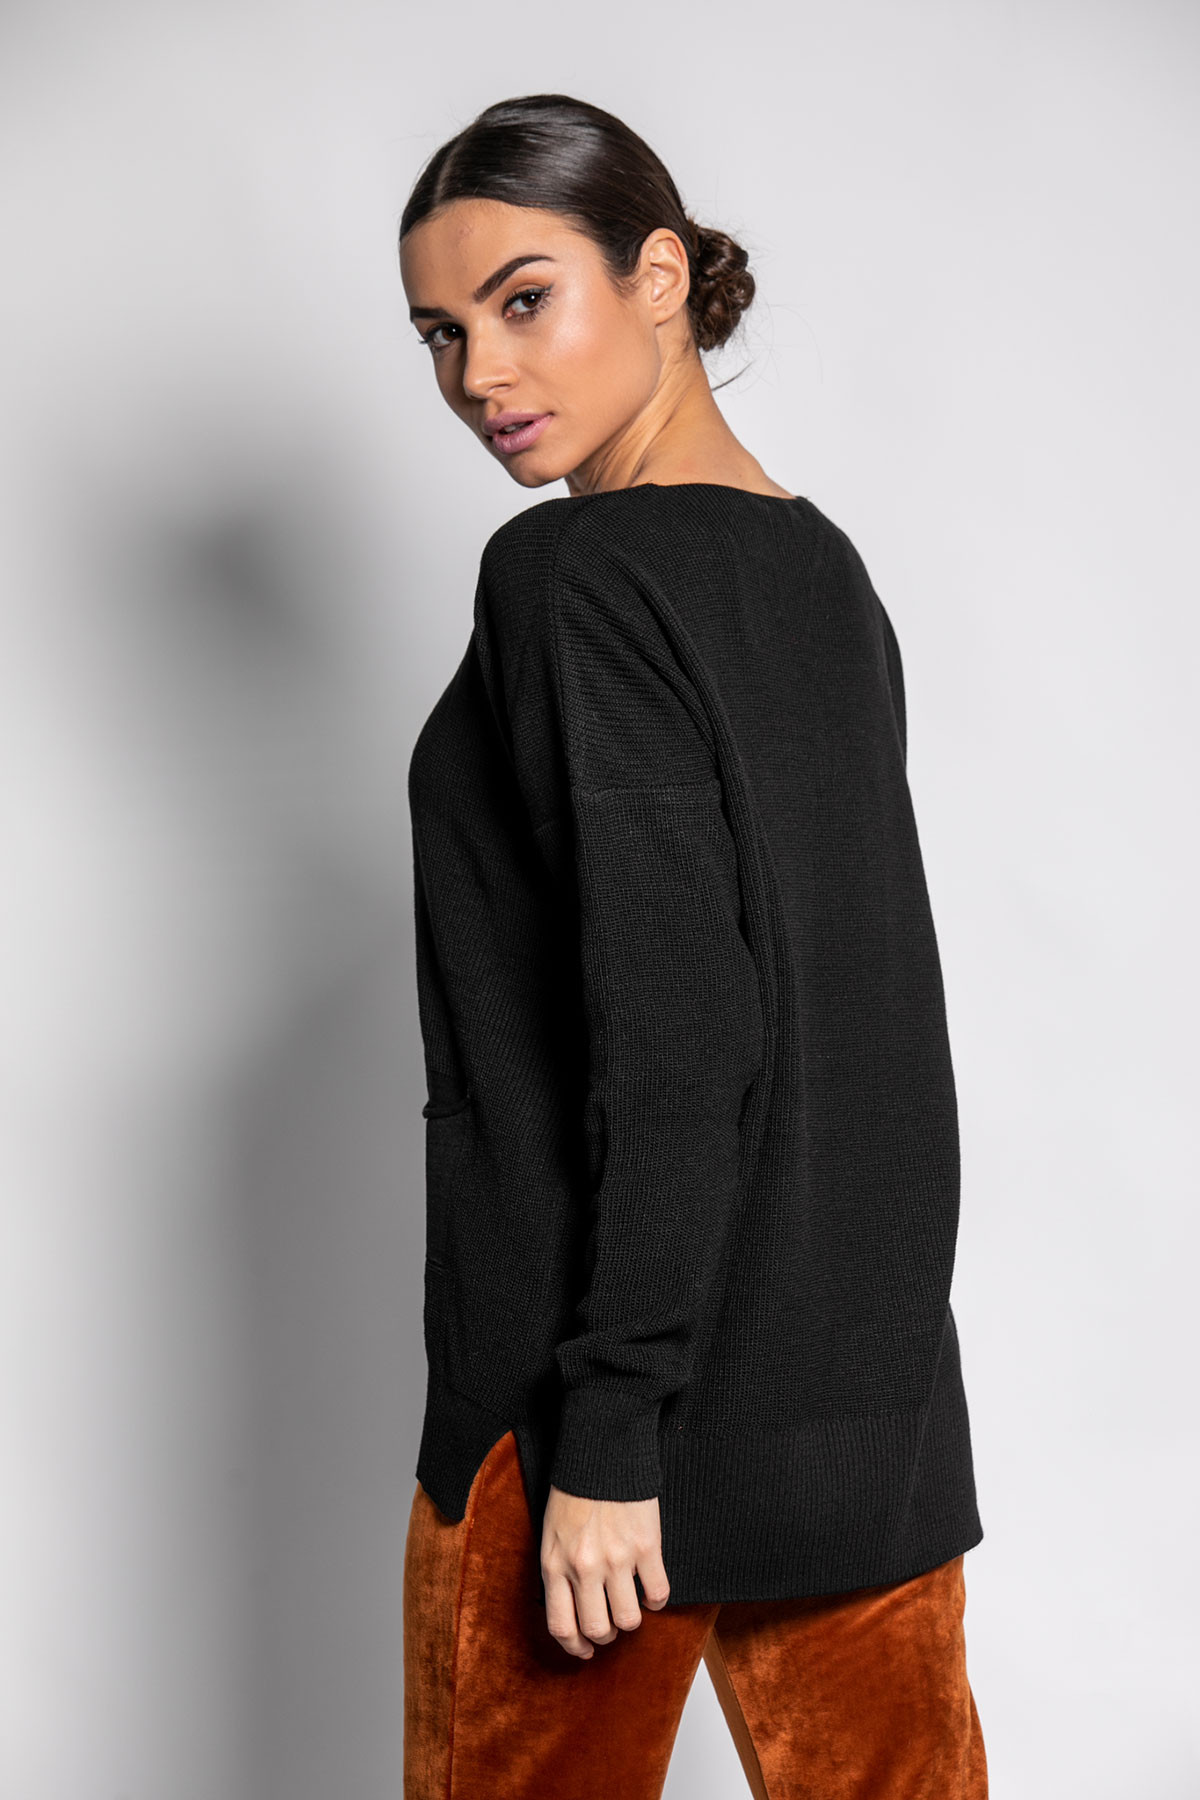 BLACK BASIC KNIT TOP WITH POCKET